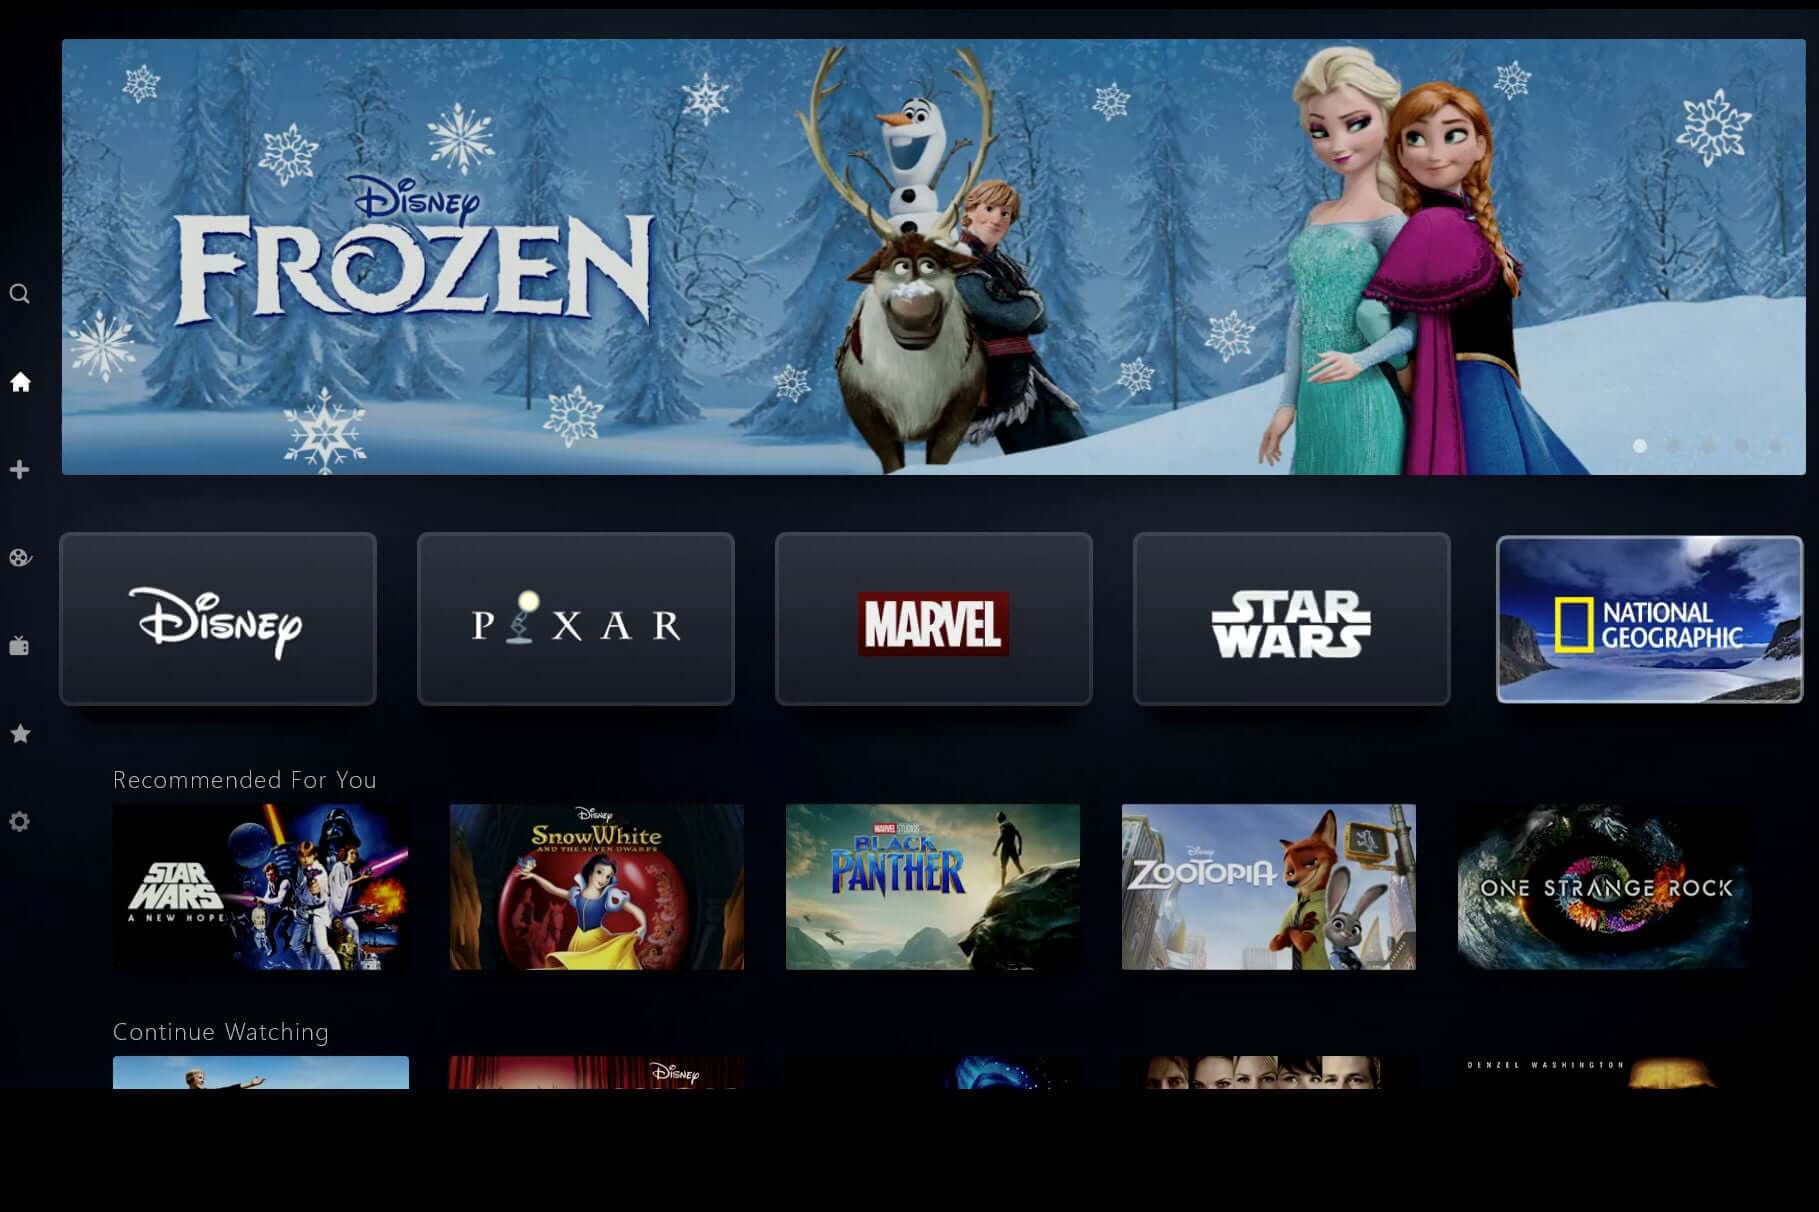 Stream Disney+ abroad with a VPN